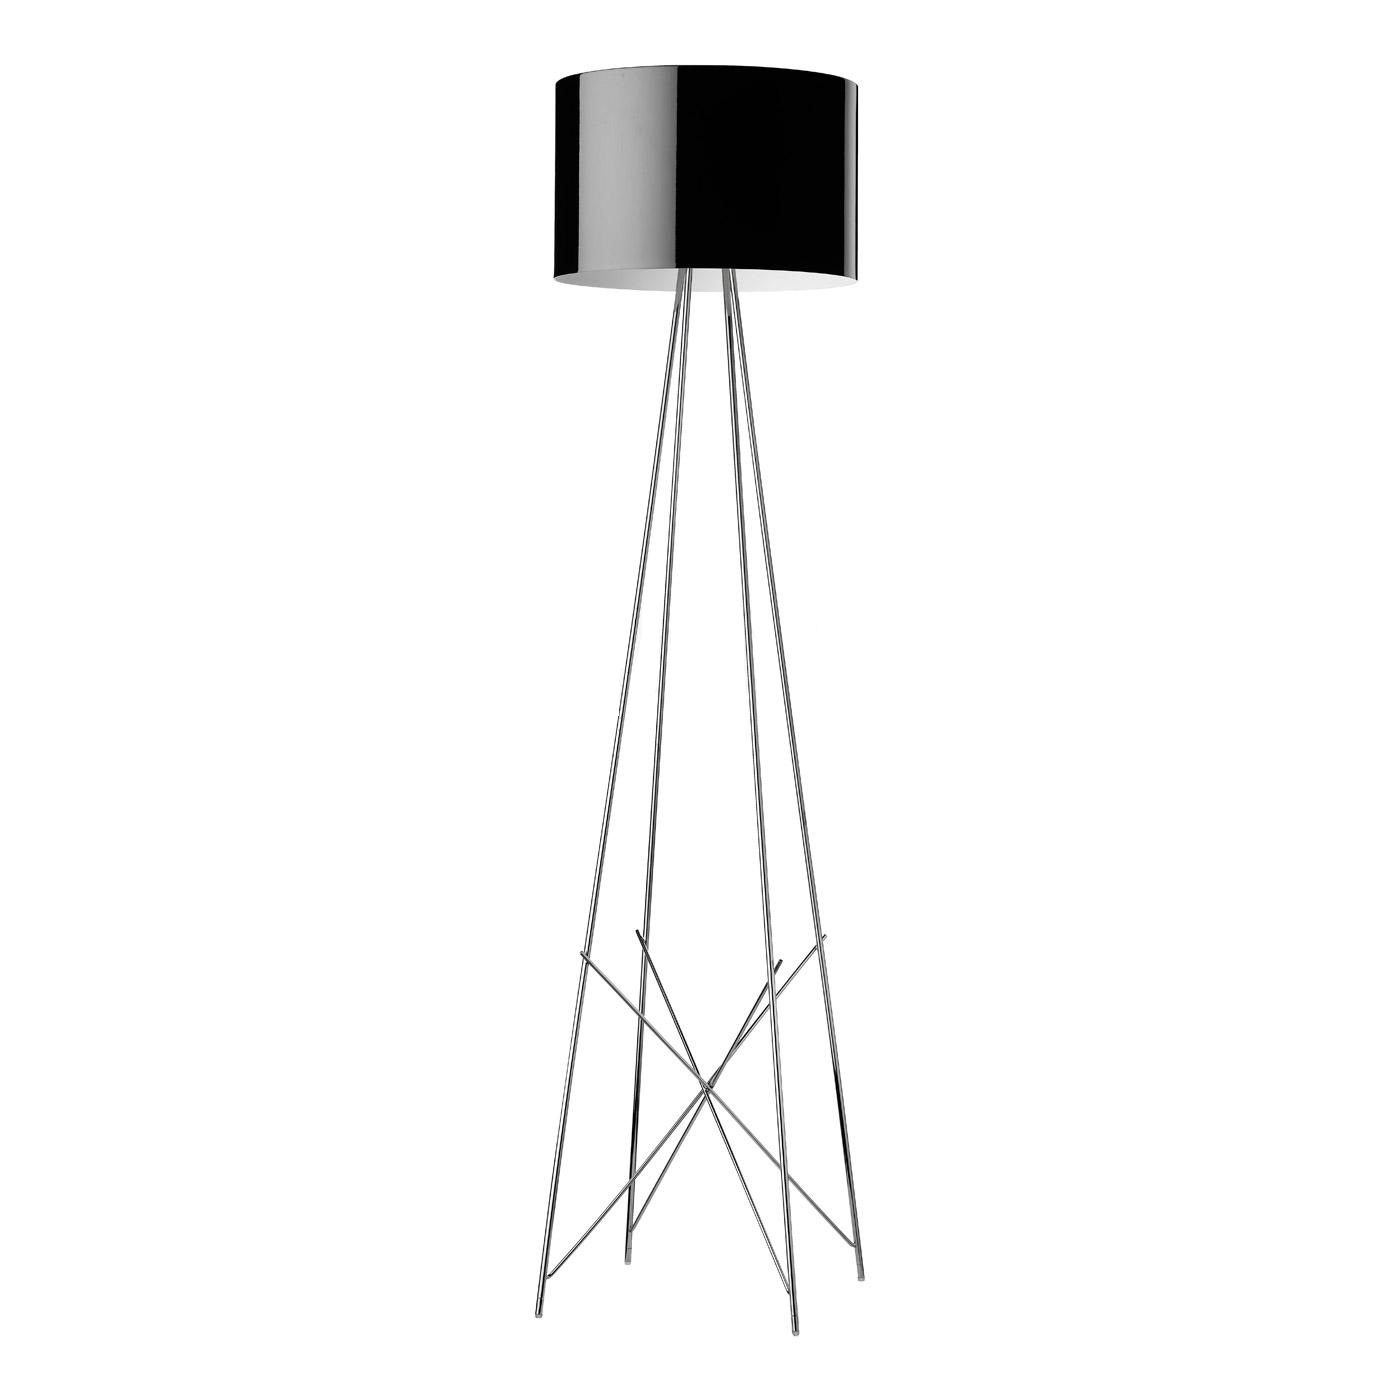 Flos ray t switch table lamp white f5941009 lamparas de for Flos ray t table lamp